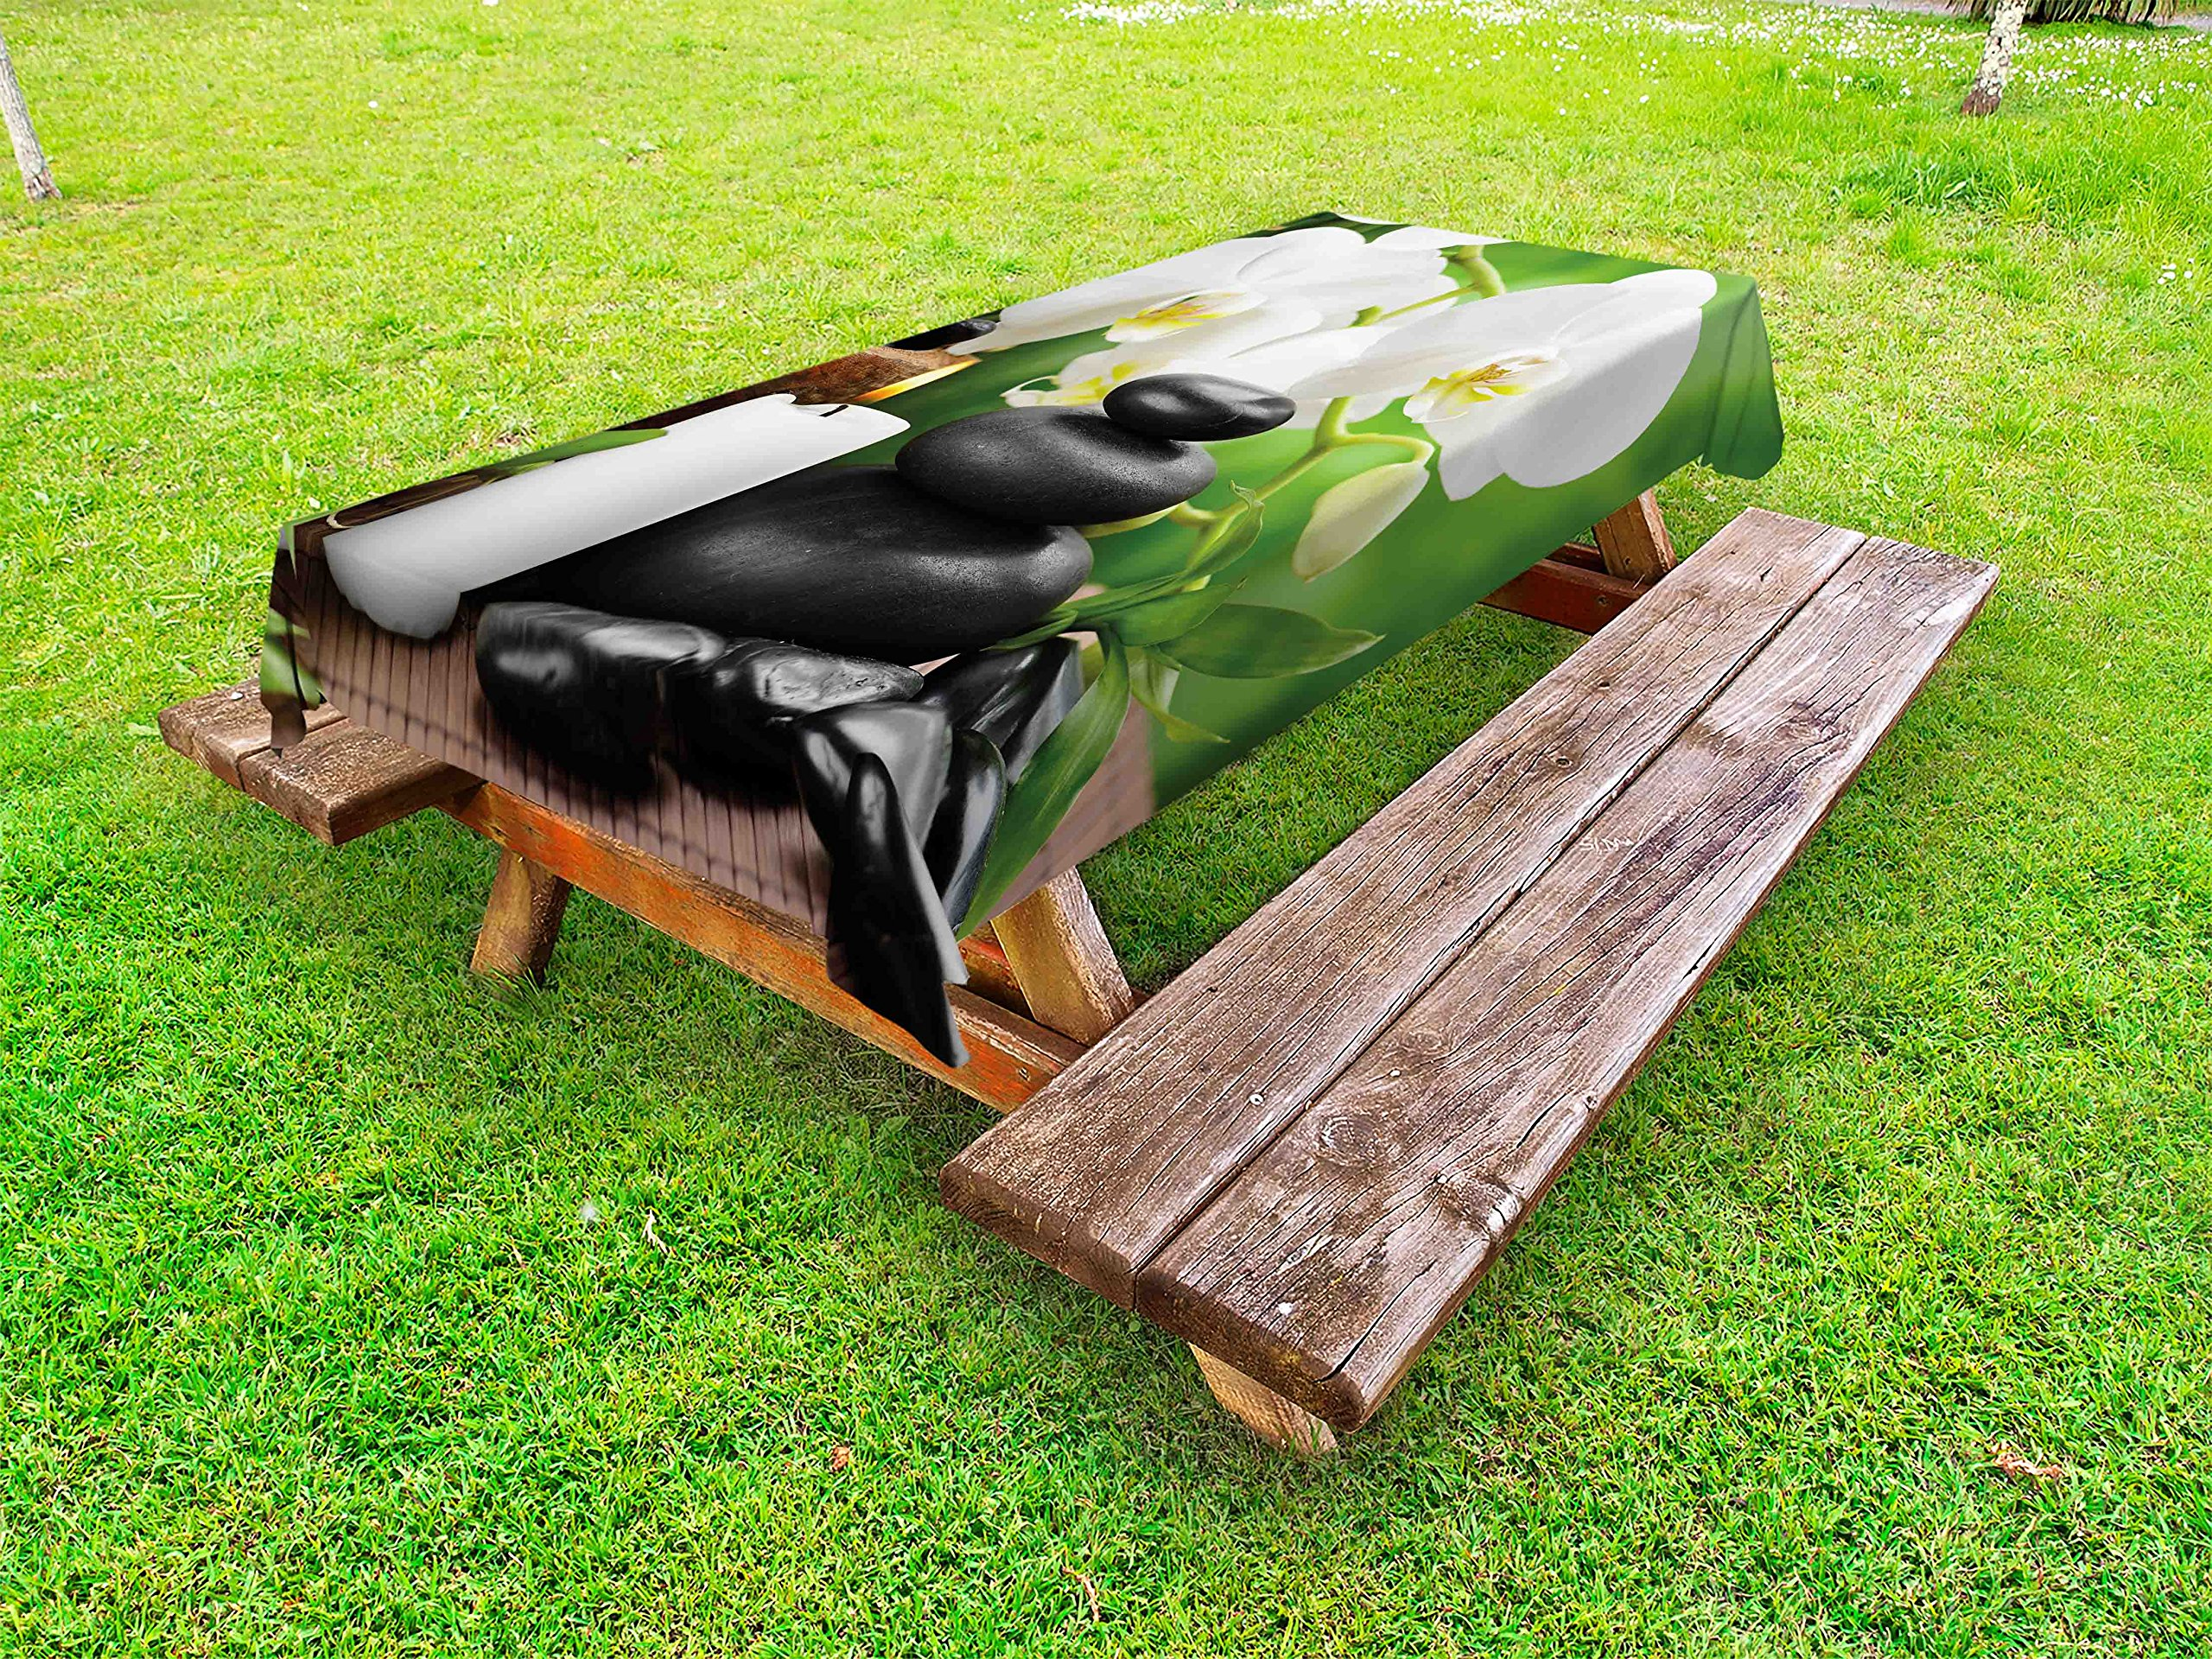 Ambesonne Spa Outdoor Tablecloth, Zen Hot Massage Stones with Orchid Candles and Magnificent Nature Remedies, Decorative Washable Picnic Table Cloth, 58 X 84 inches, Black White and Green